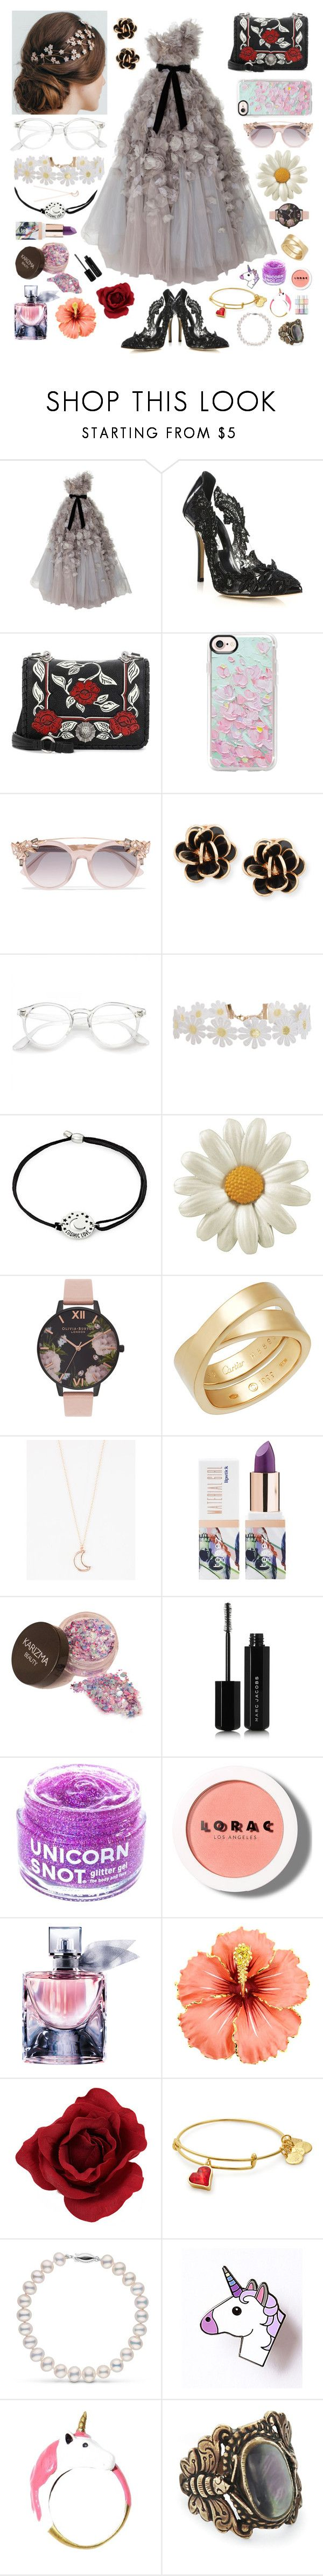 """""""Would you care for a dance?~"""" by lost-masked-kitten ❤ liked on Polyvore featuring Marchesa, Oscar de la Renta, Miu Miu, Casetify, Jimmy Choo, Chantecler, Humble Chic, Alex and Ani, Olivia Burton and Full Tilt"""